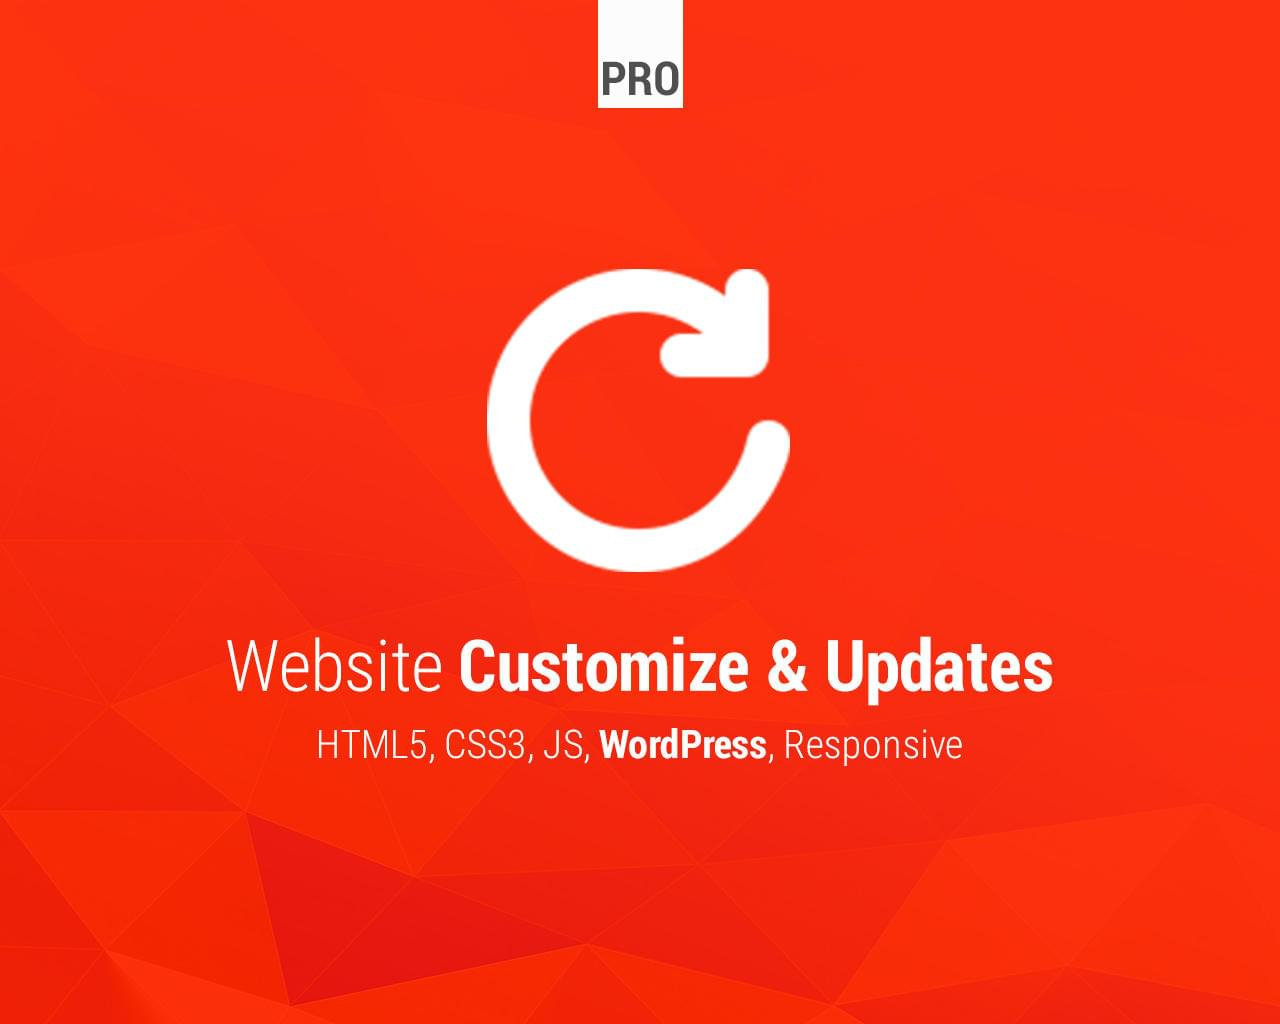 Website Customize & Updates - HTML / CSS / JS / WordPress by Lukasz_Czerwinski - 113560